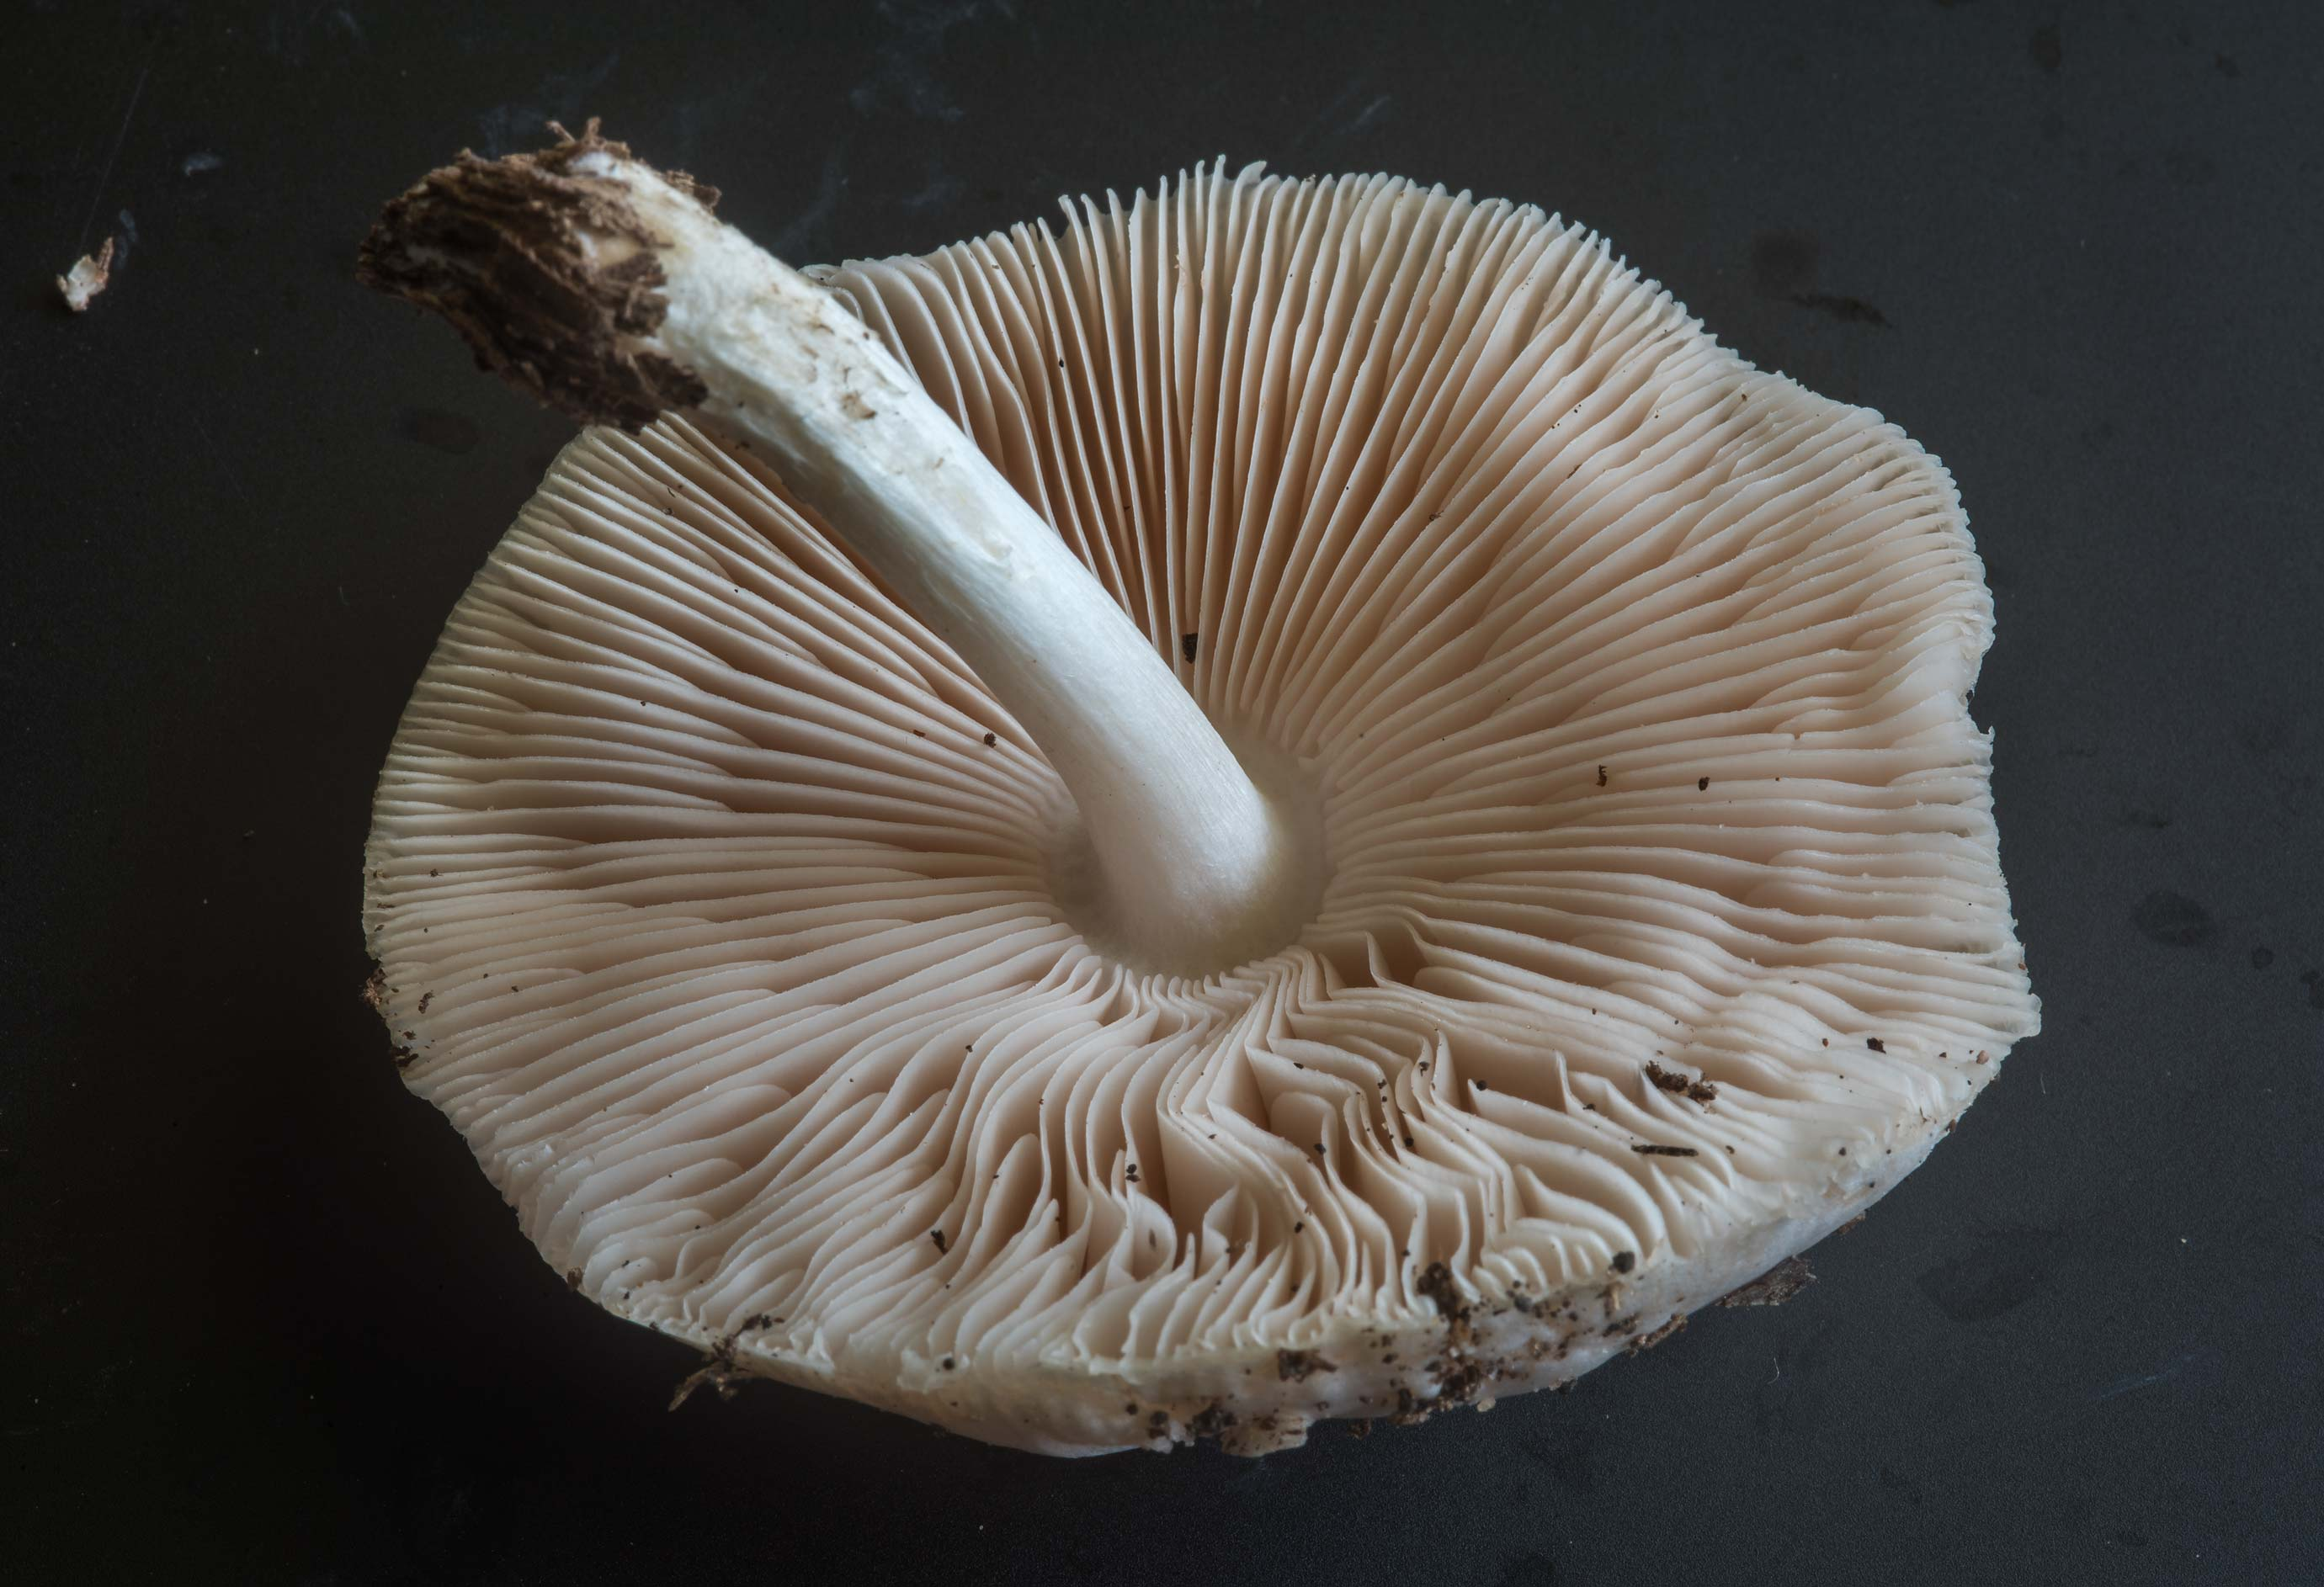 Gills of Pluteus mushroom taken from Lick Creek Park. College Station, Texas